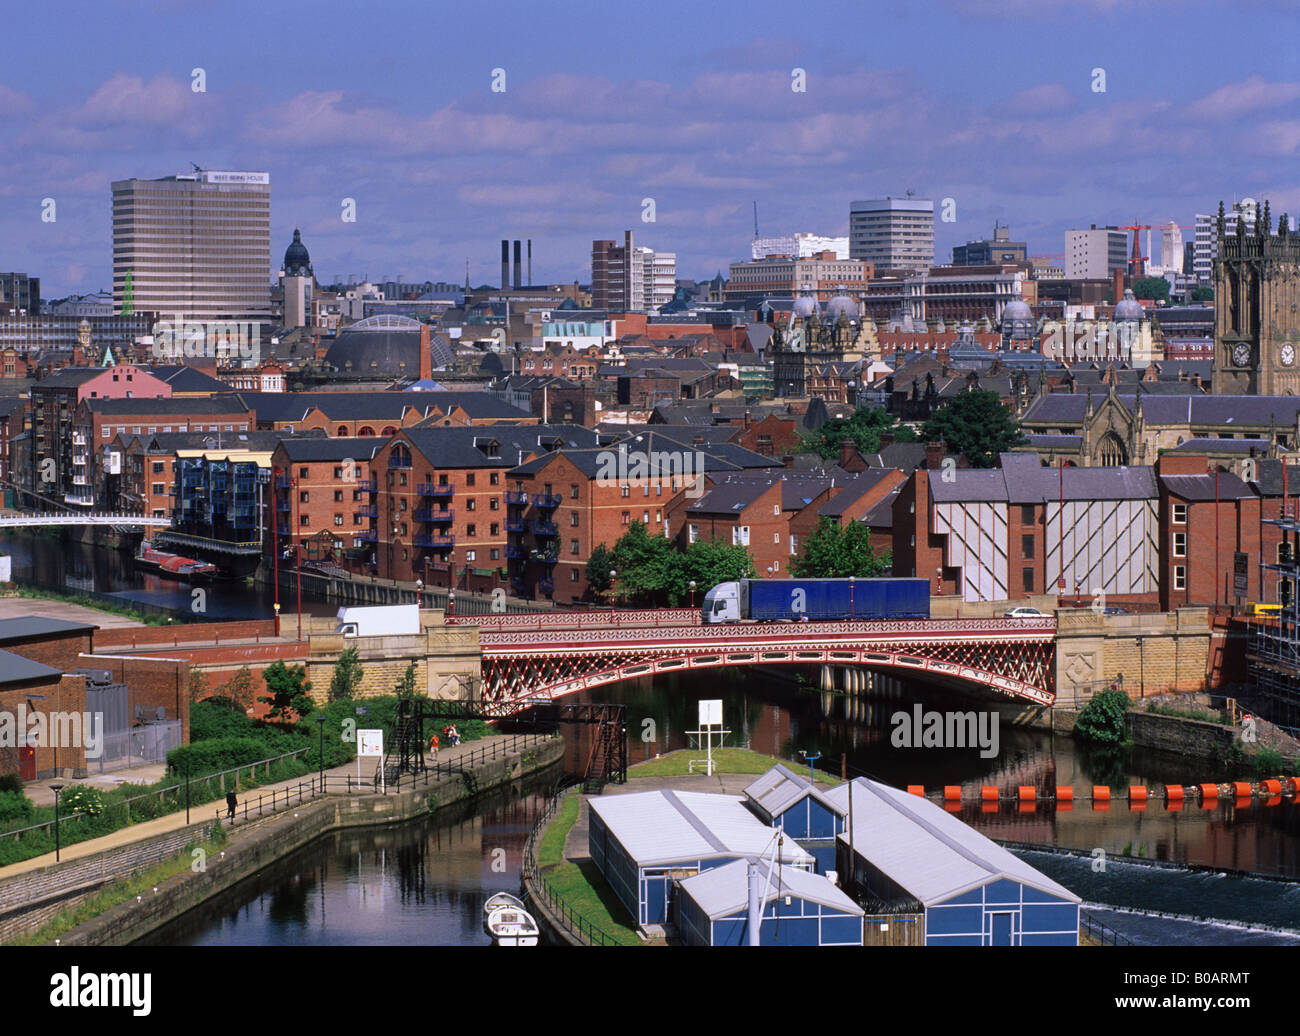 traffic crossing bridge over the River Aire in the city of Leeds Yorkshire UK - Stock Image